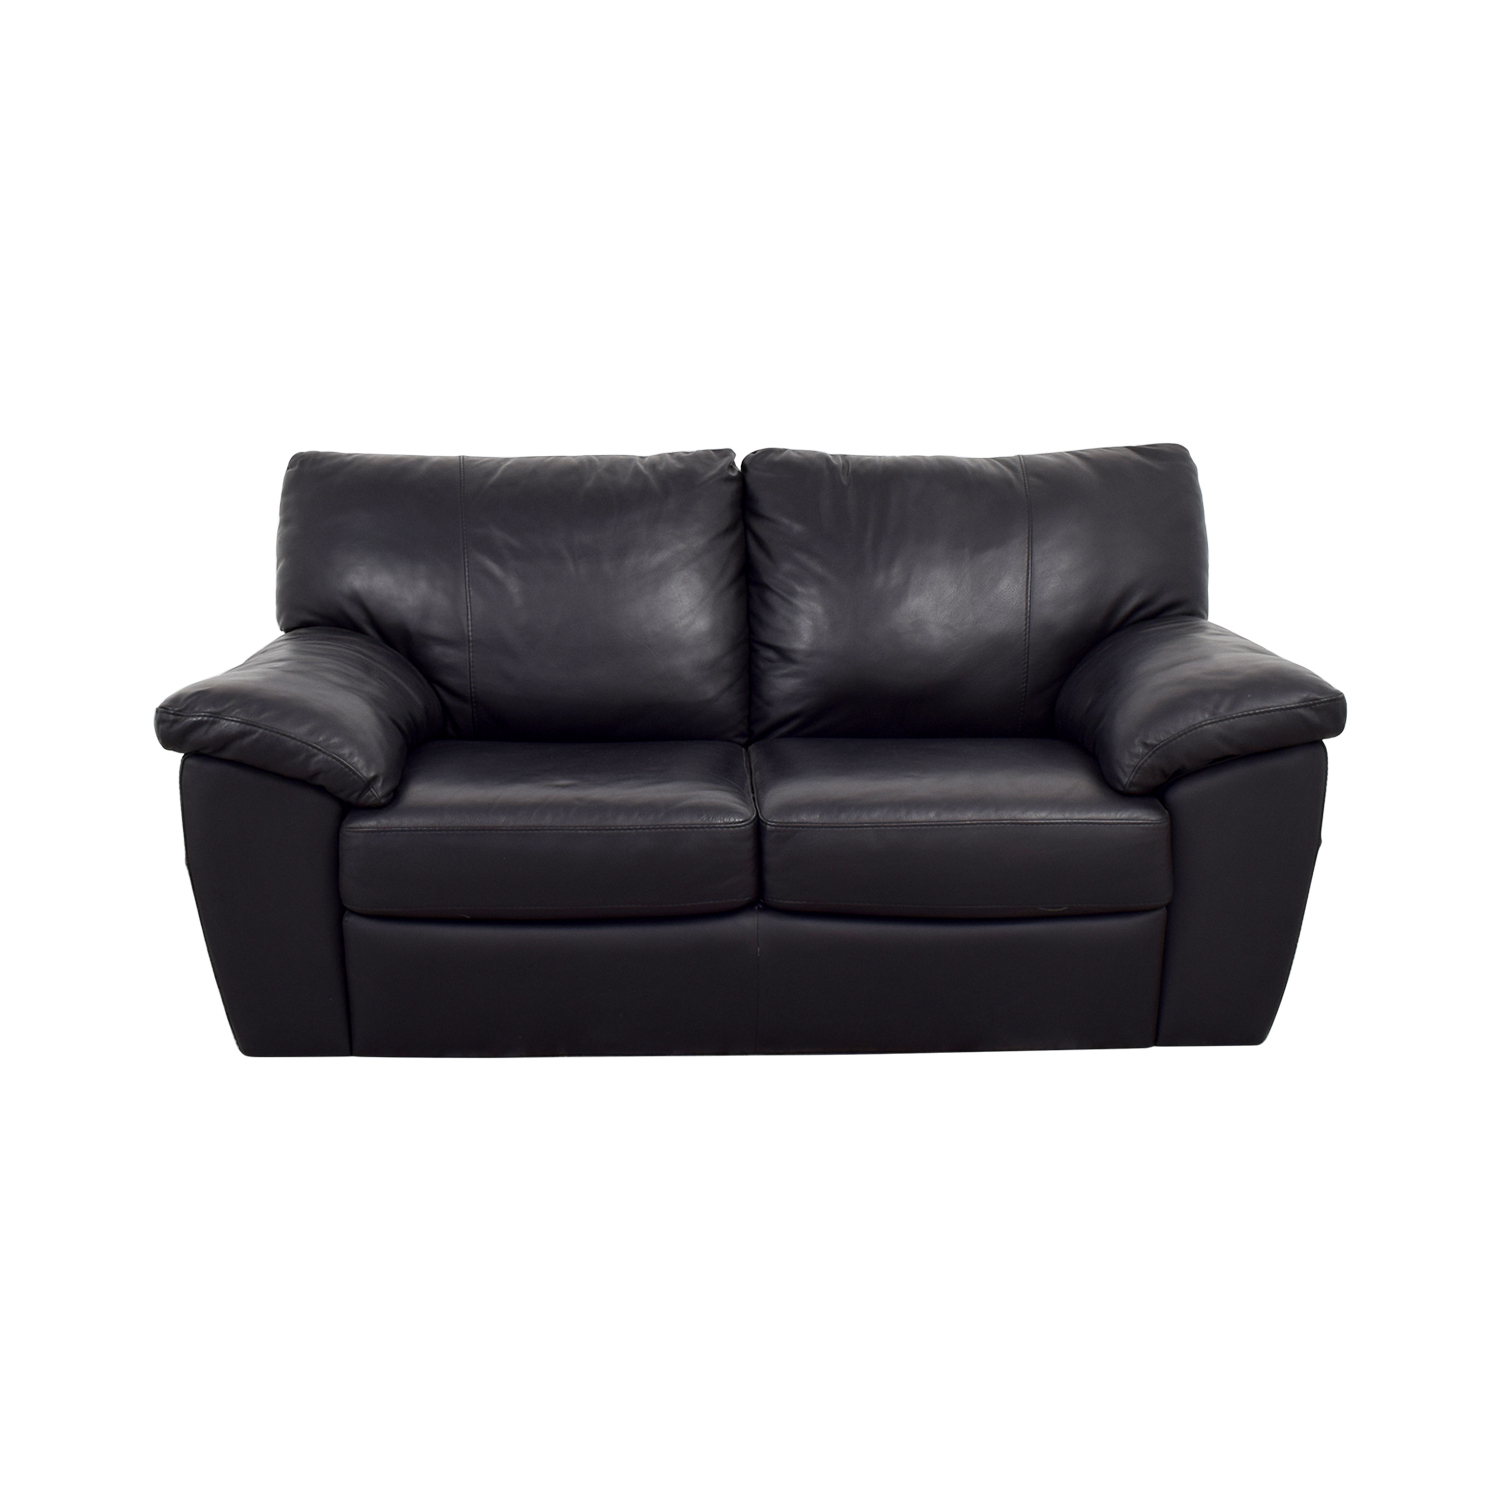 81 off ikea ikea black leather two cushion couch sofas. Black Bedroom Furniture Sets. Home Design Ideas